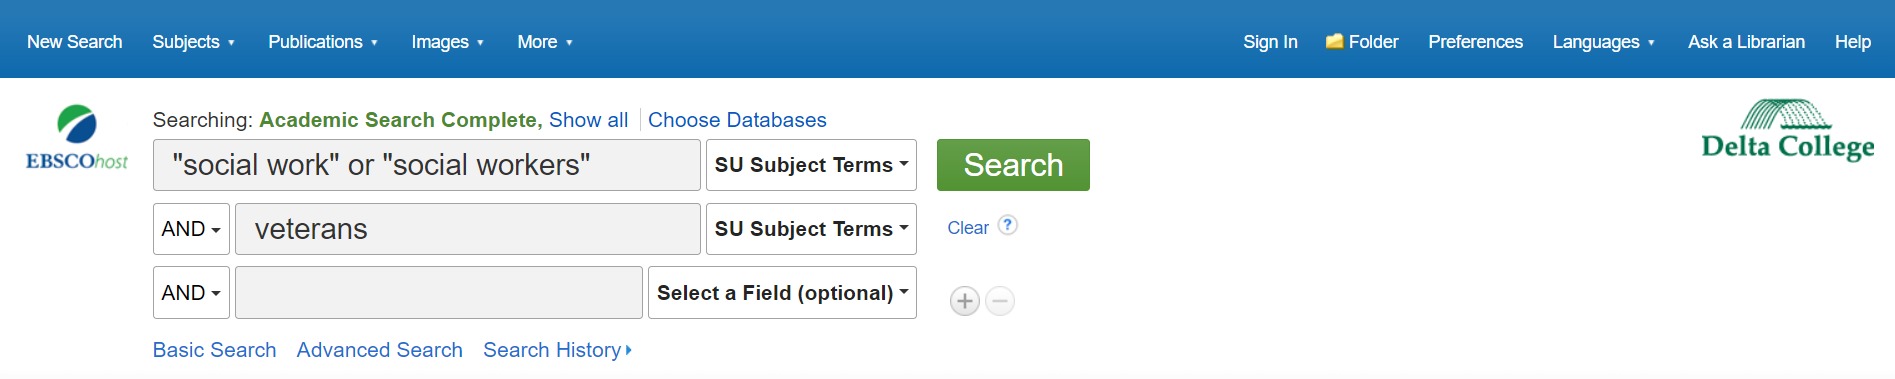 EBSCO search example